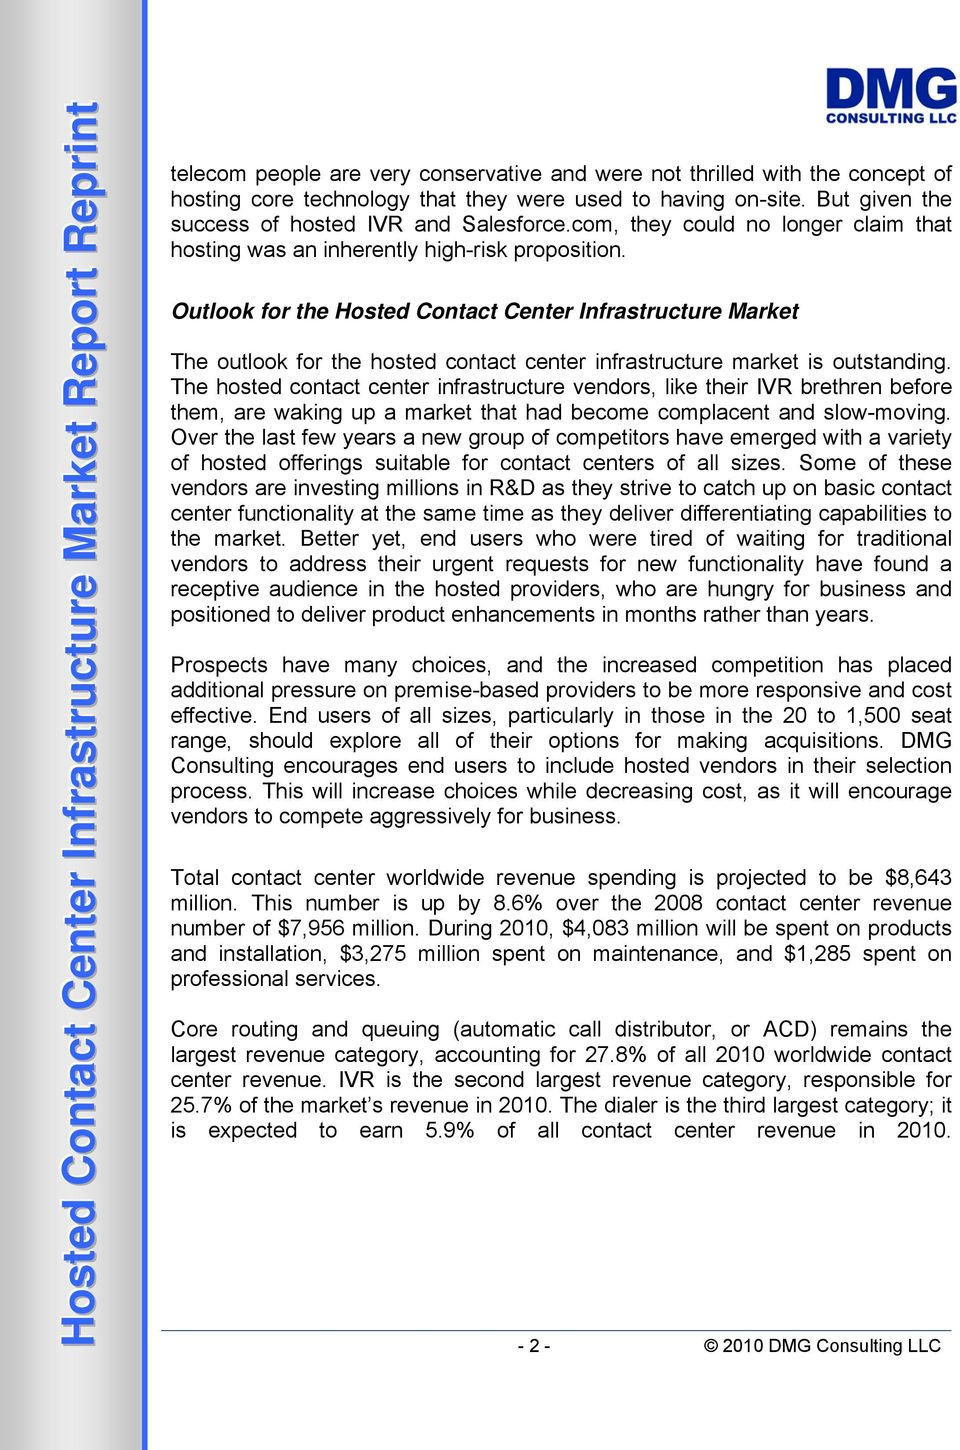 Outlook for the Hosted Contact Center Infrastructure Market The outlook for the hosted contact center infrastructure market is outstanding.